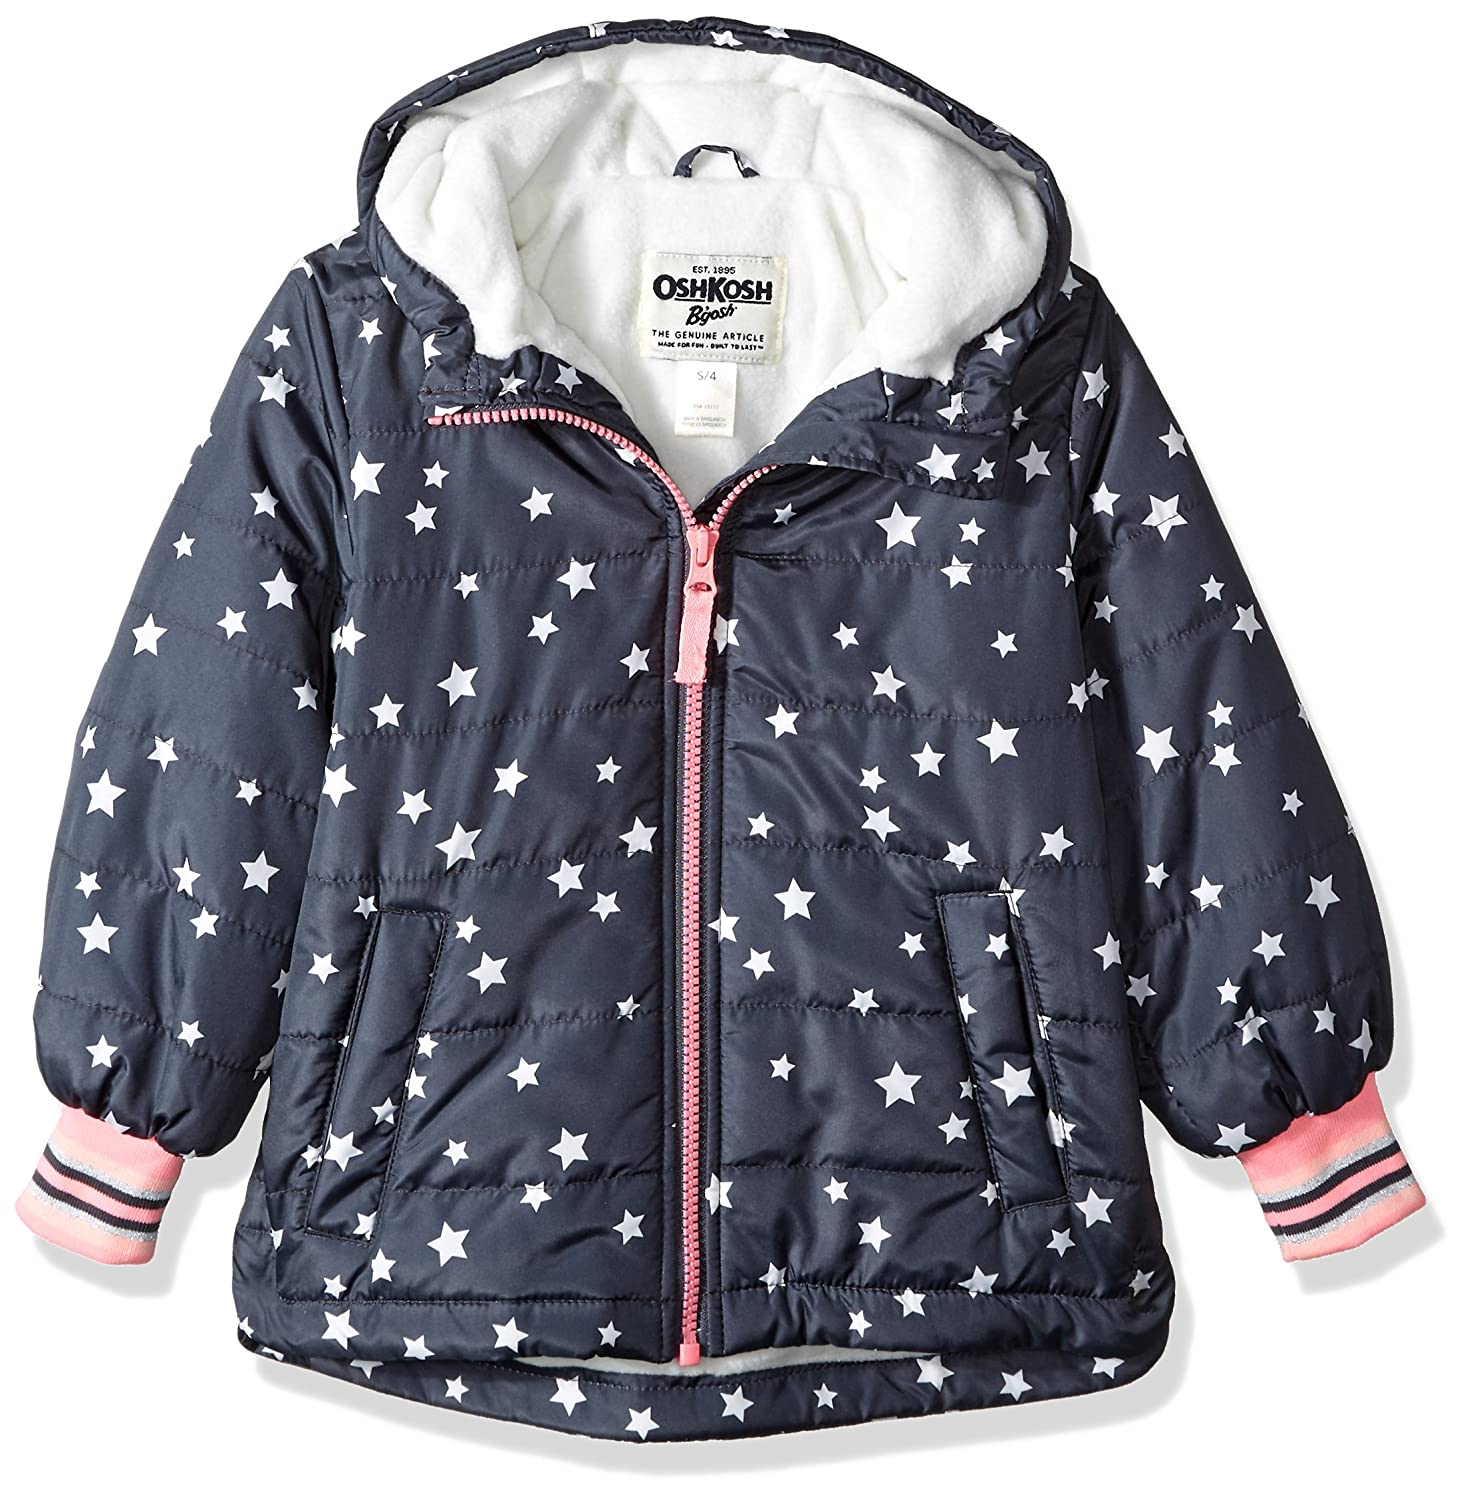 OshKosh B'Gosh Girls' Midweight Fleece-Lined Jacket Osh Kosh